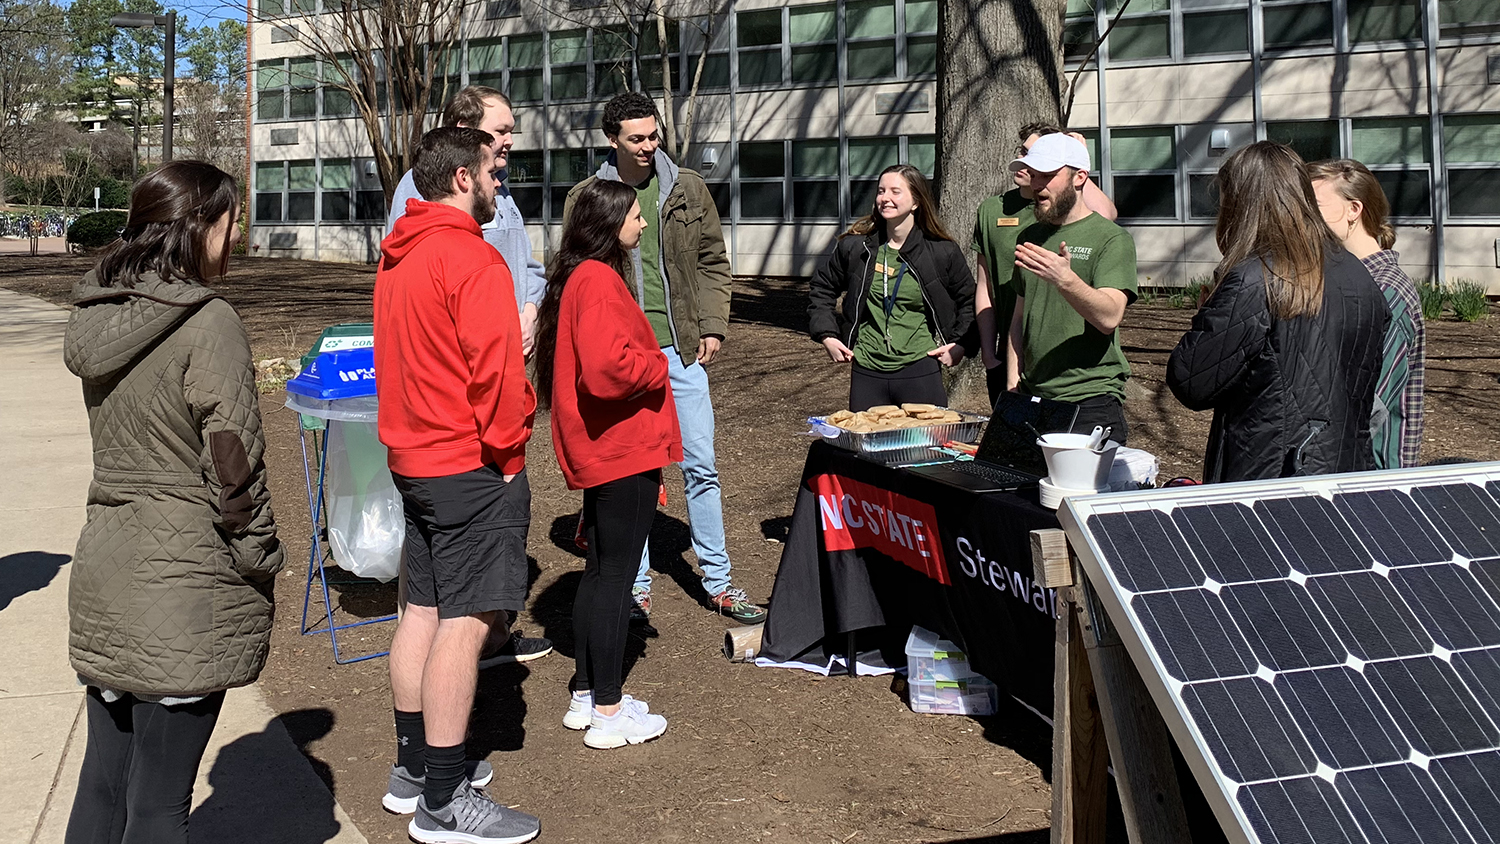 NC State Stewards, wearing matching green T-shirts, speak to a small group of fellow students outside next to a solar panel - Finding Your Wolfpack: Floursih With Sustainability - Forest Biomaterials NC State University